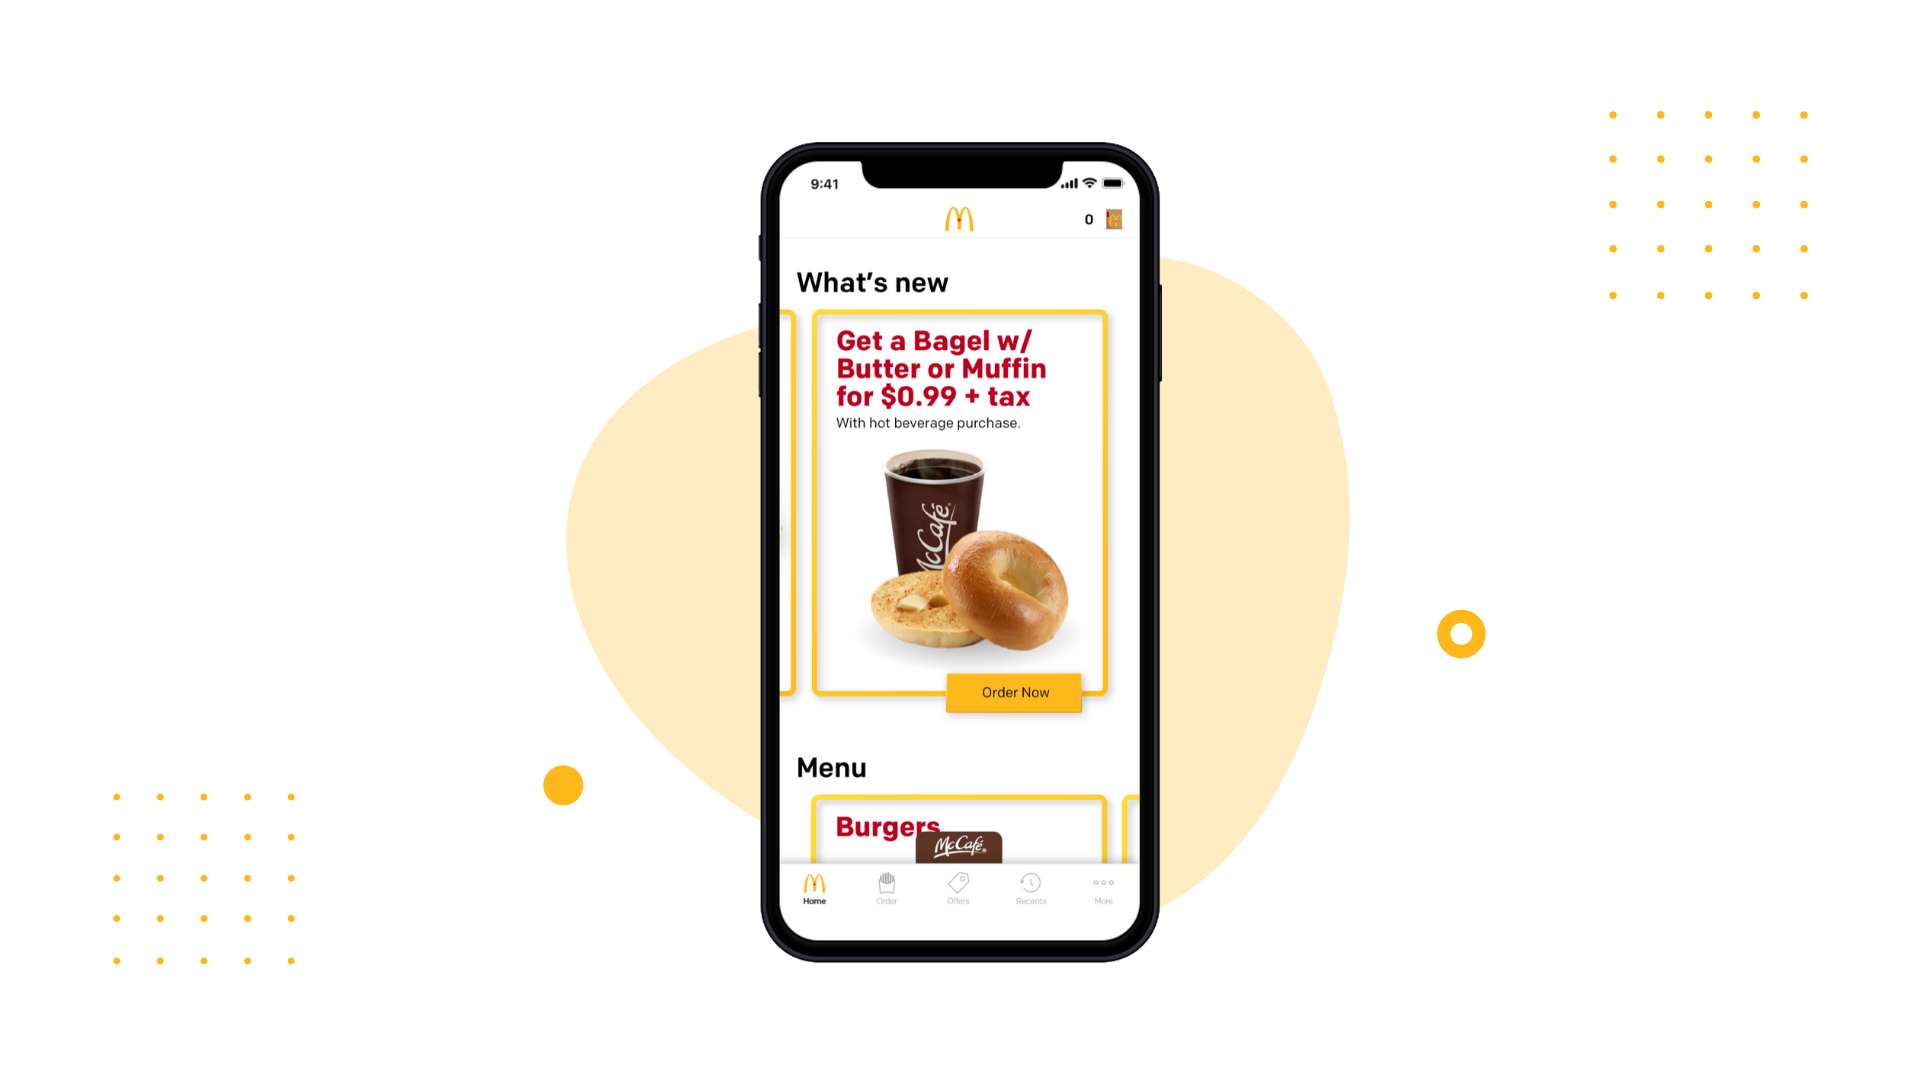 McDonalds-Home-Screen-1